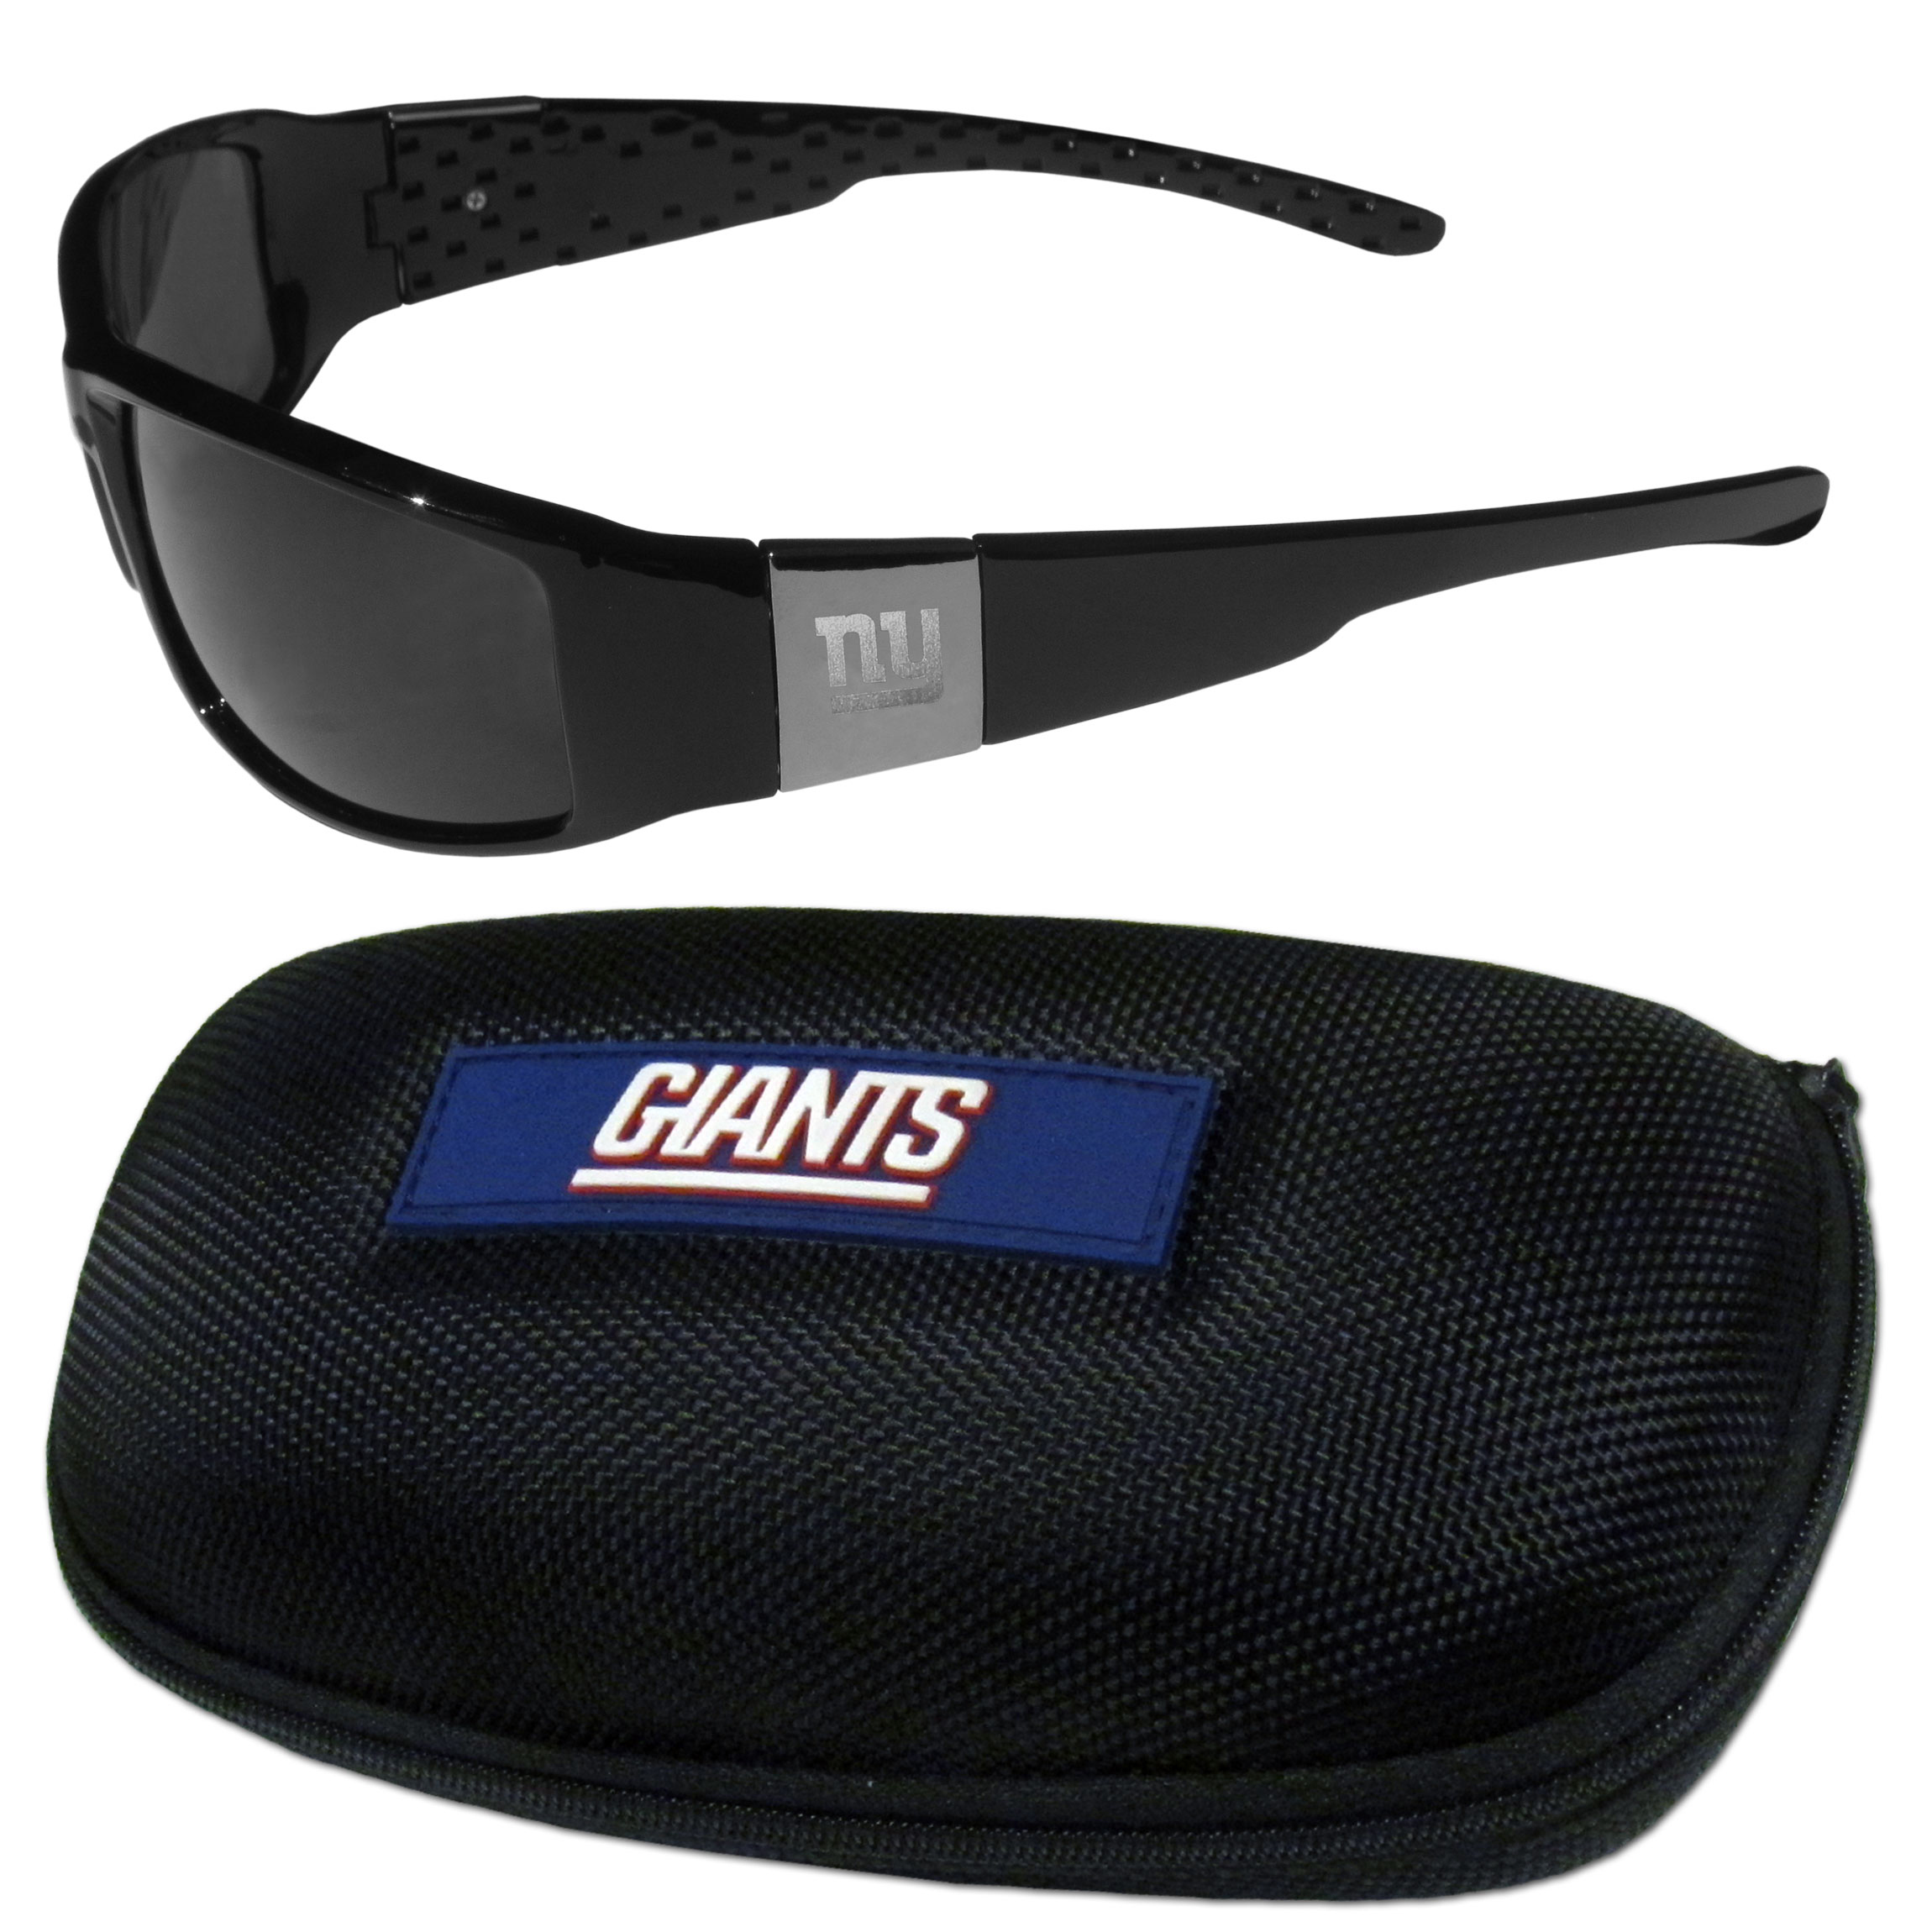 New York Giants Chrome Wrap Sunglasses and Zippered Carrying Case - This set includes our sleek and stylish New York Giants chrome wrap sunglasses and our hard shell, zippered carrying case. The sunglasses feature etched team logos on each arm and 100% UVA/UVB protection. The case features a large and colorful team emblem.